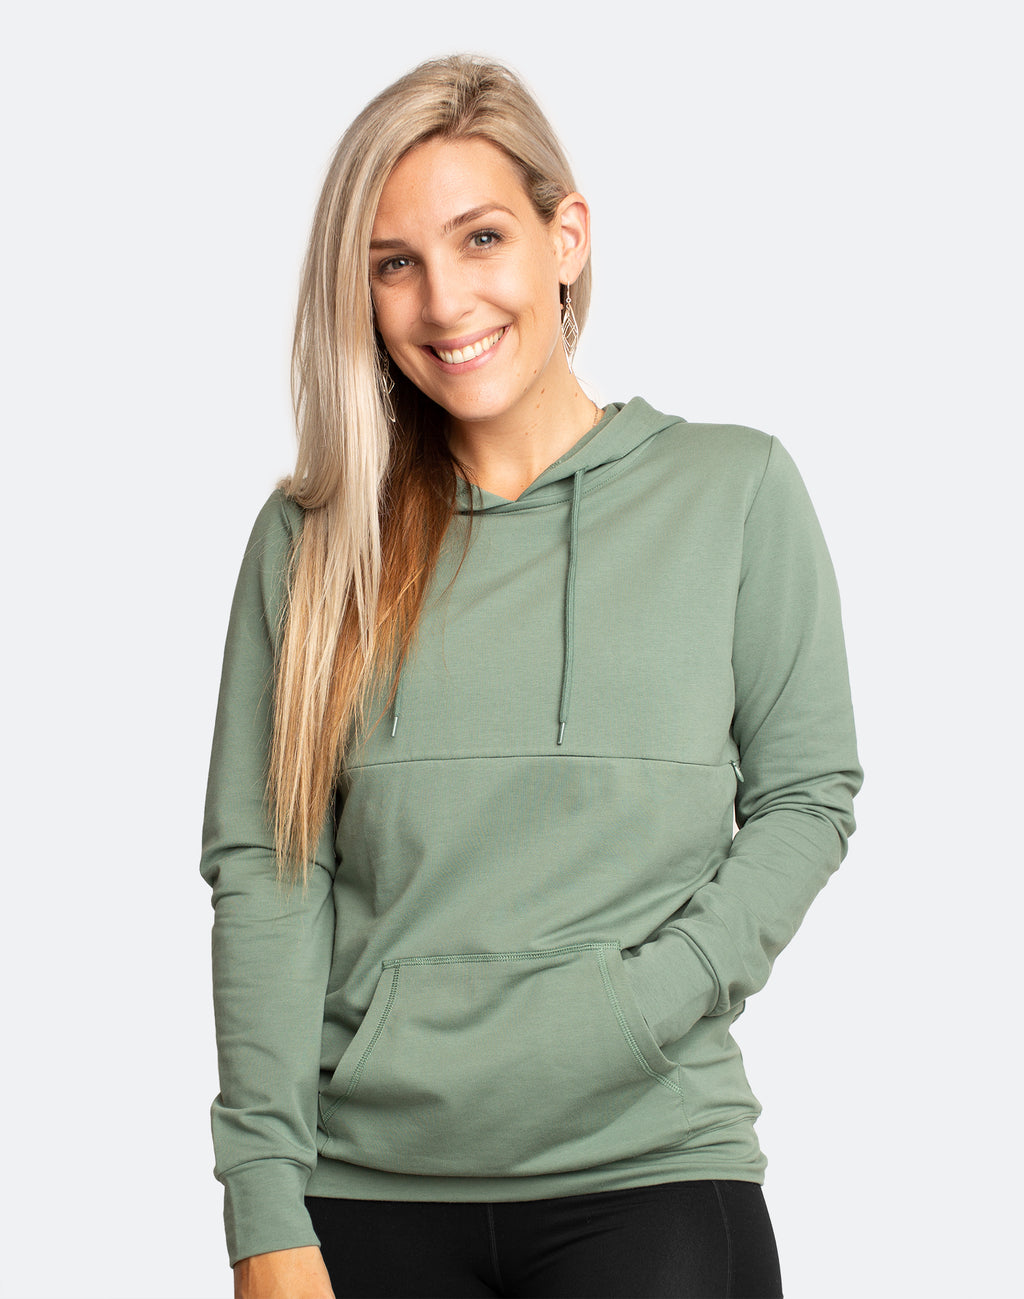 4171ac21bc9d9 side view of an active mother wearing a khaki breastfeeding hoodie